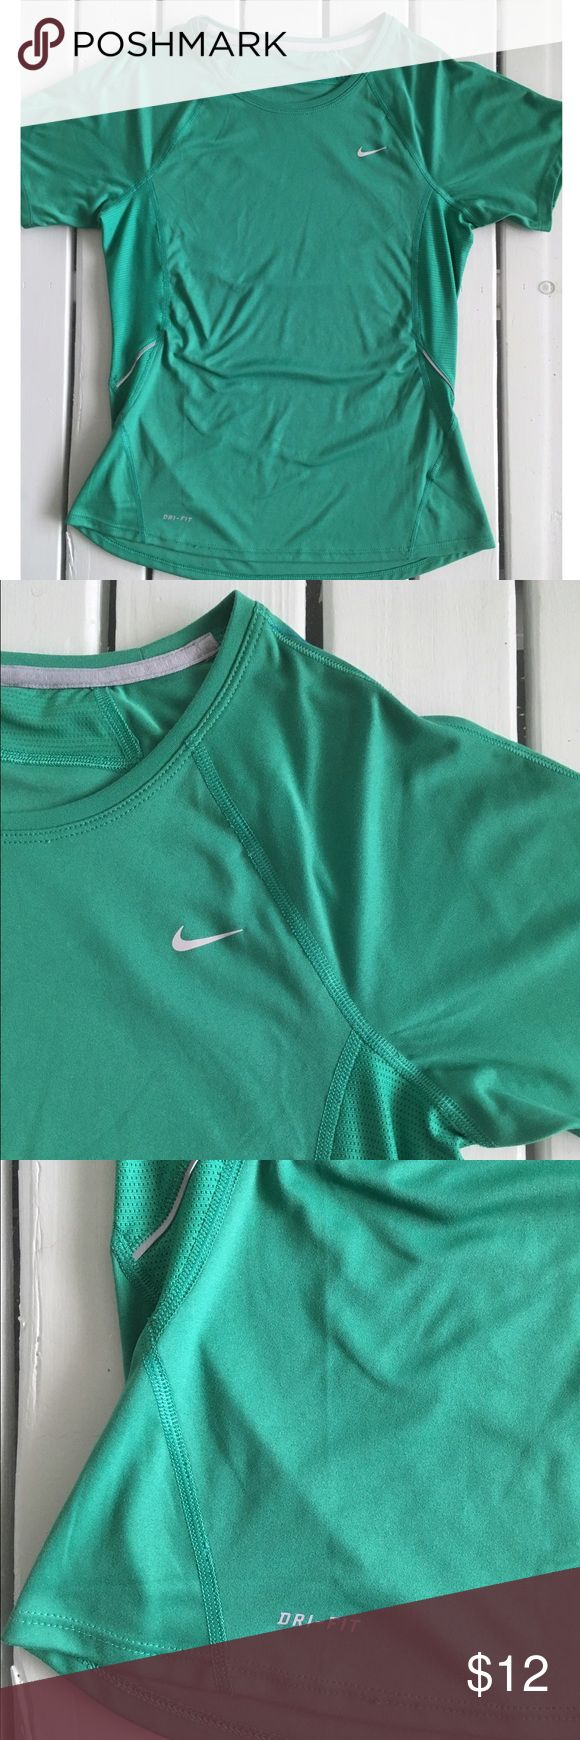 Nike Short Sleeve Dri-Fit Tee Green short sleeve Dri-Fit tee by Nike. This top features a scoop neck and the Nike logo at the chest. There are mesh panels on both side and at the nape accented with reflective trim. 100% polyester - machine wash/line dry per tag. Nike Tops Tees - Short Sleeve